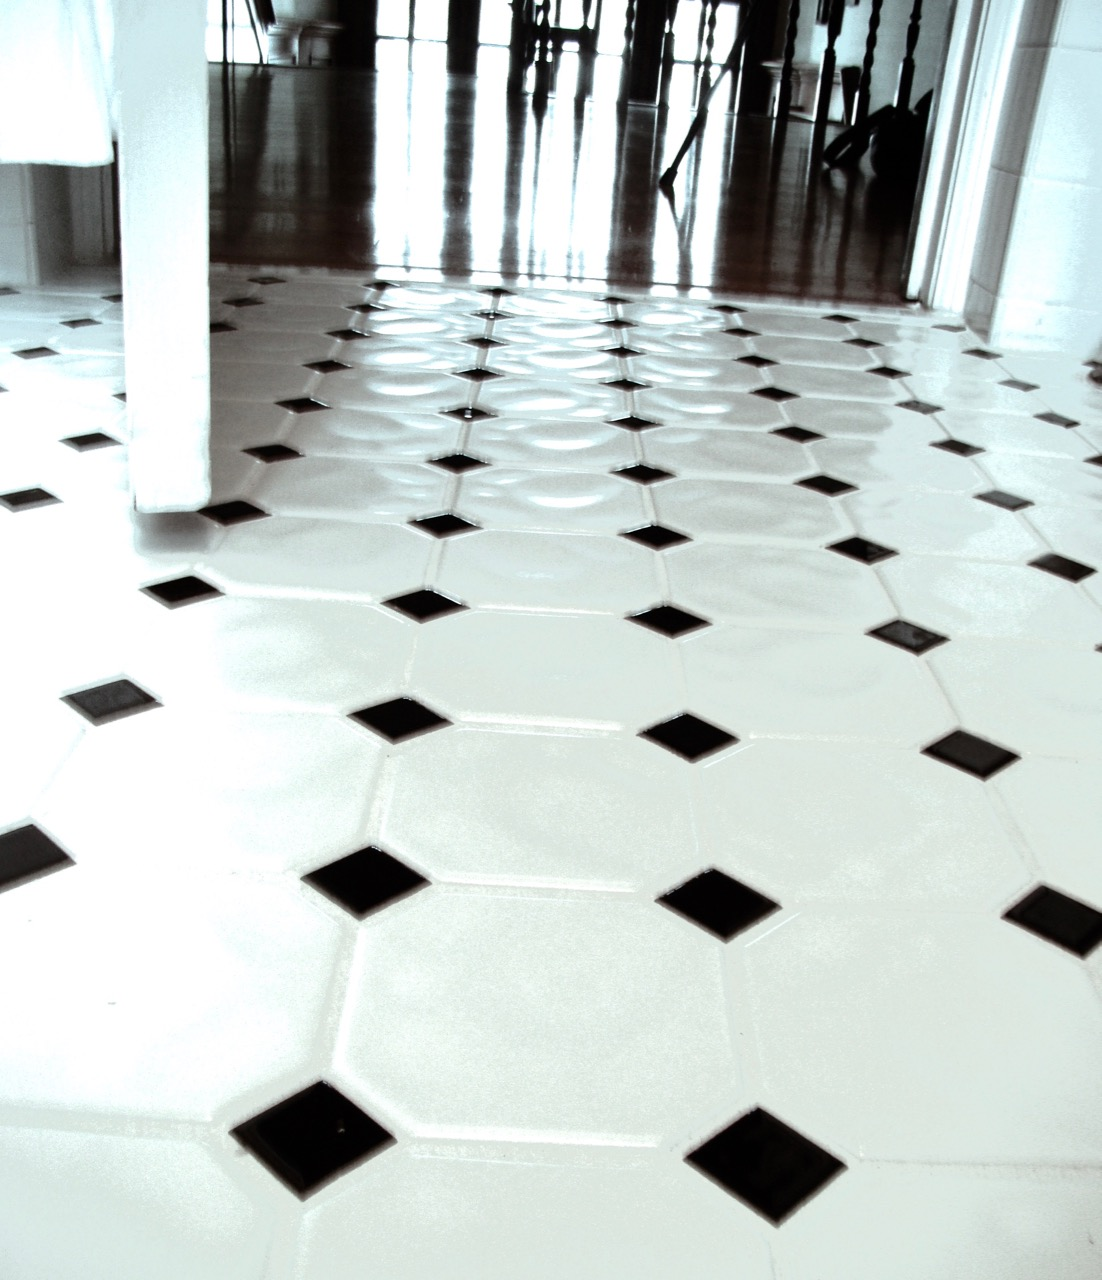 tile floor photo